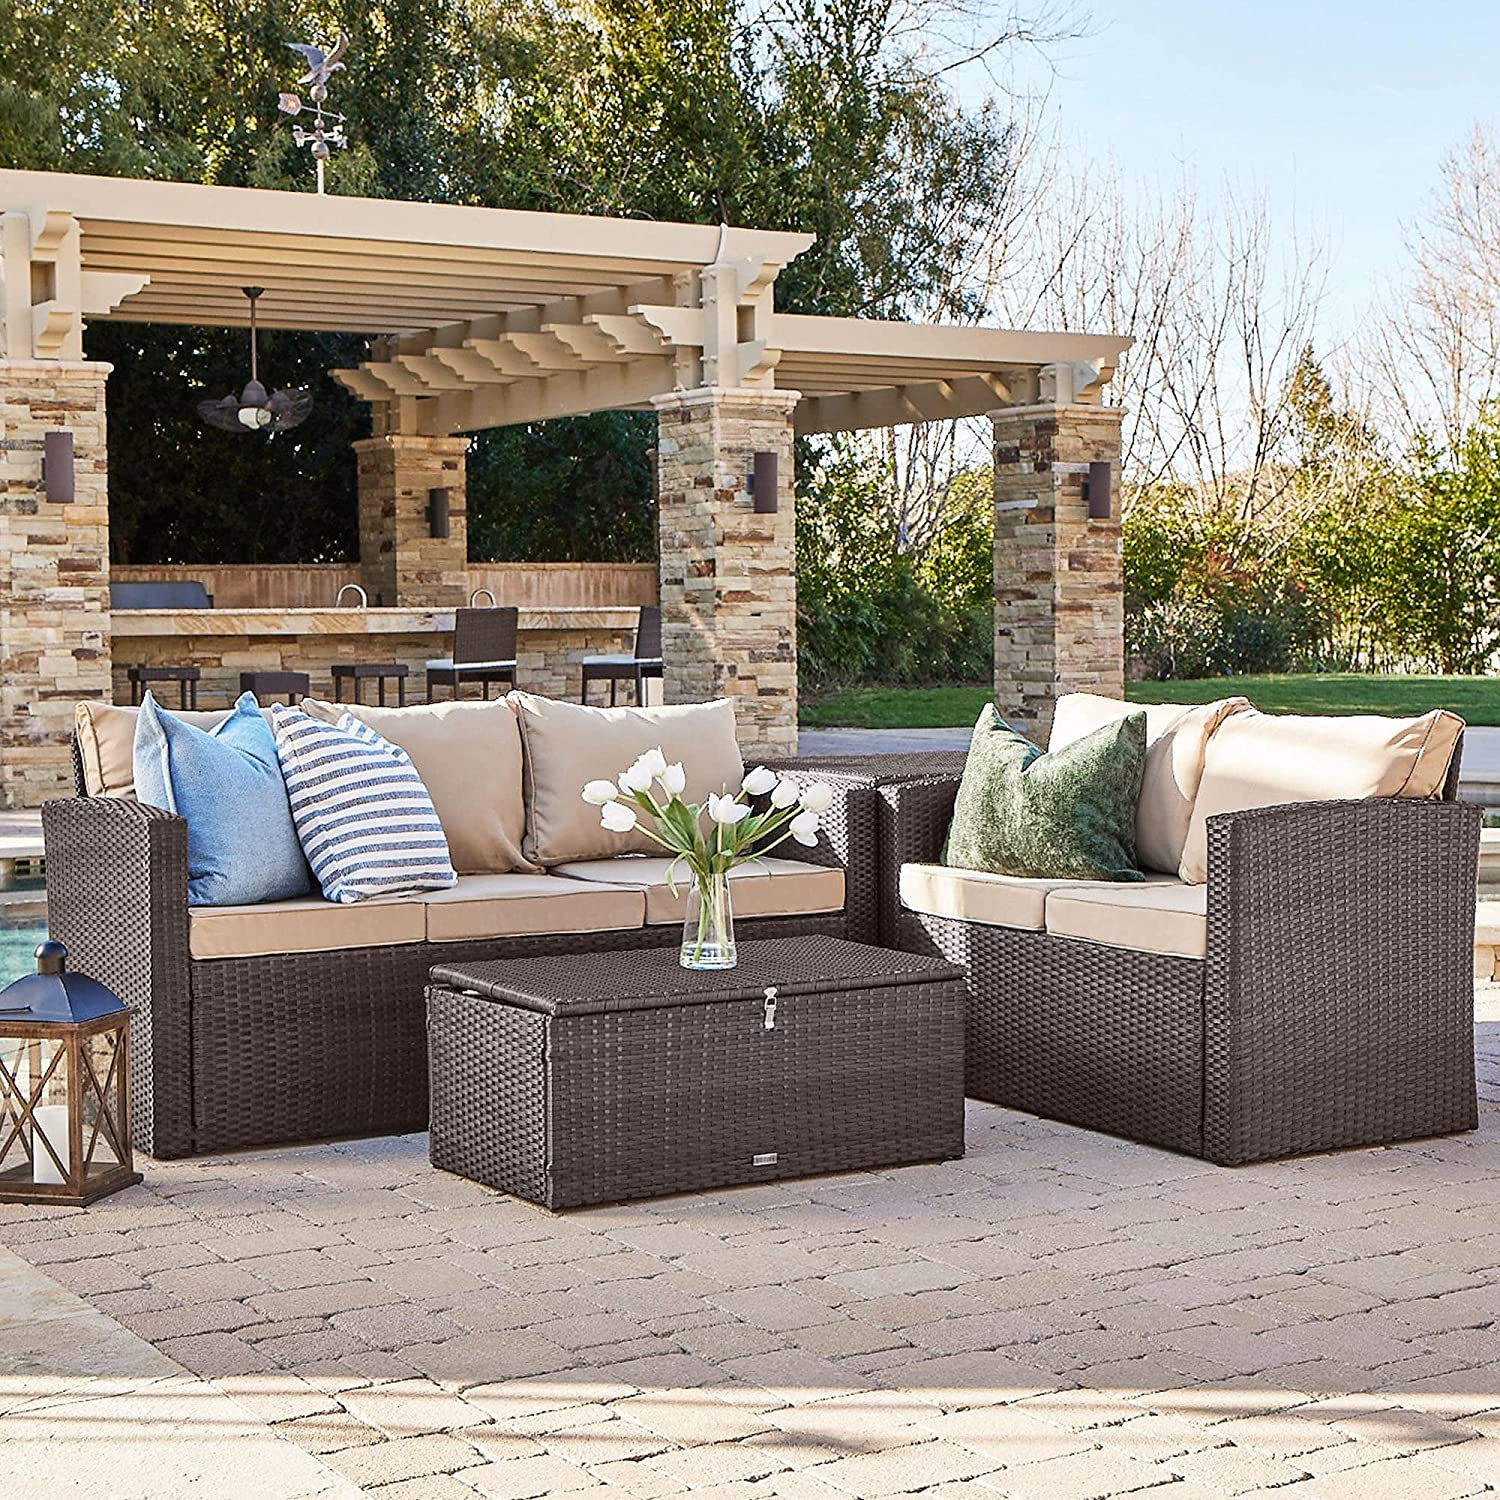 BELLEZE Outdoor online shopping 4PC Patio Wicker Set Deep Sectional Max 78% OFF Sofa Seating